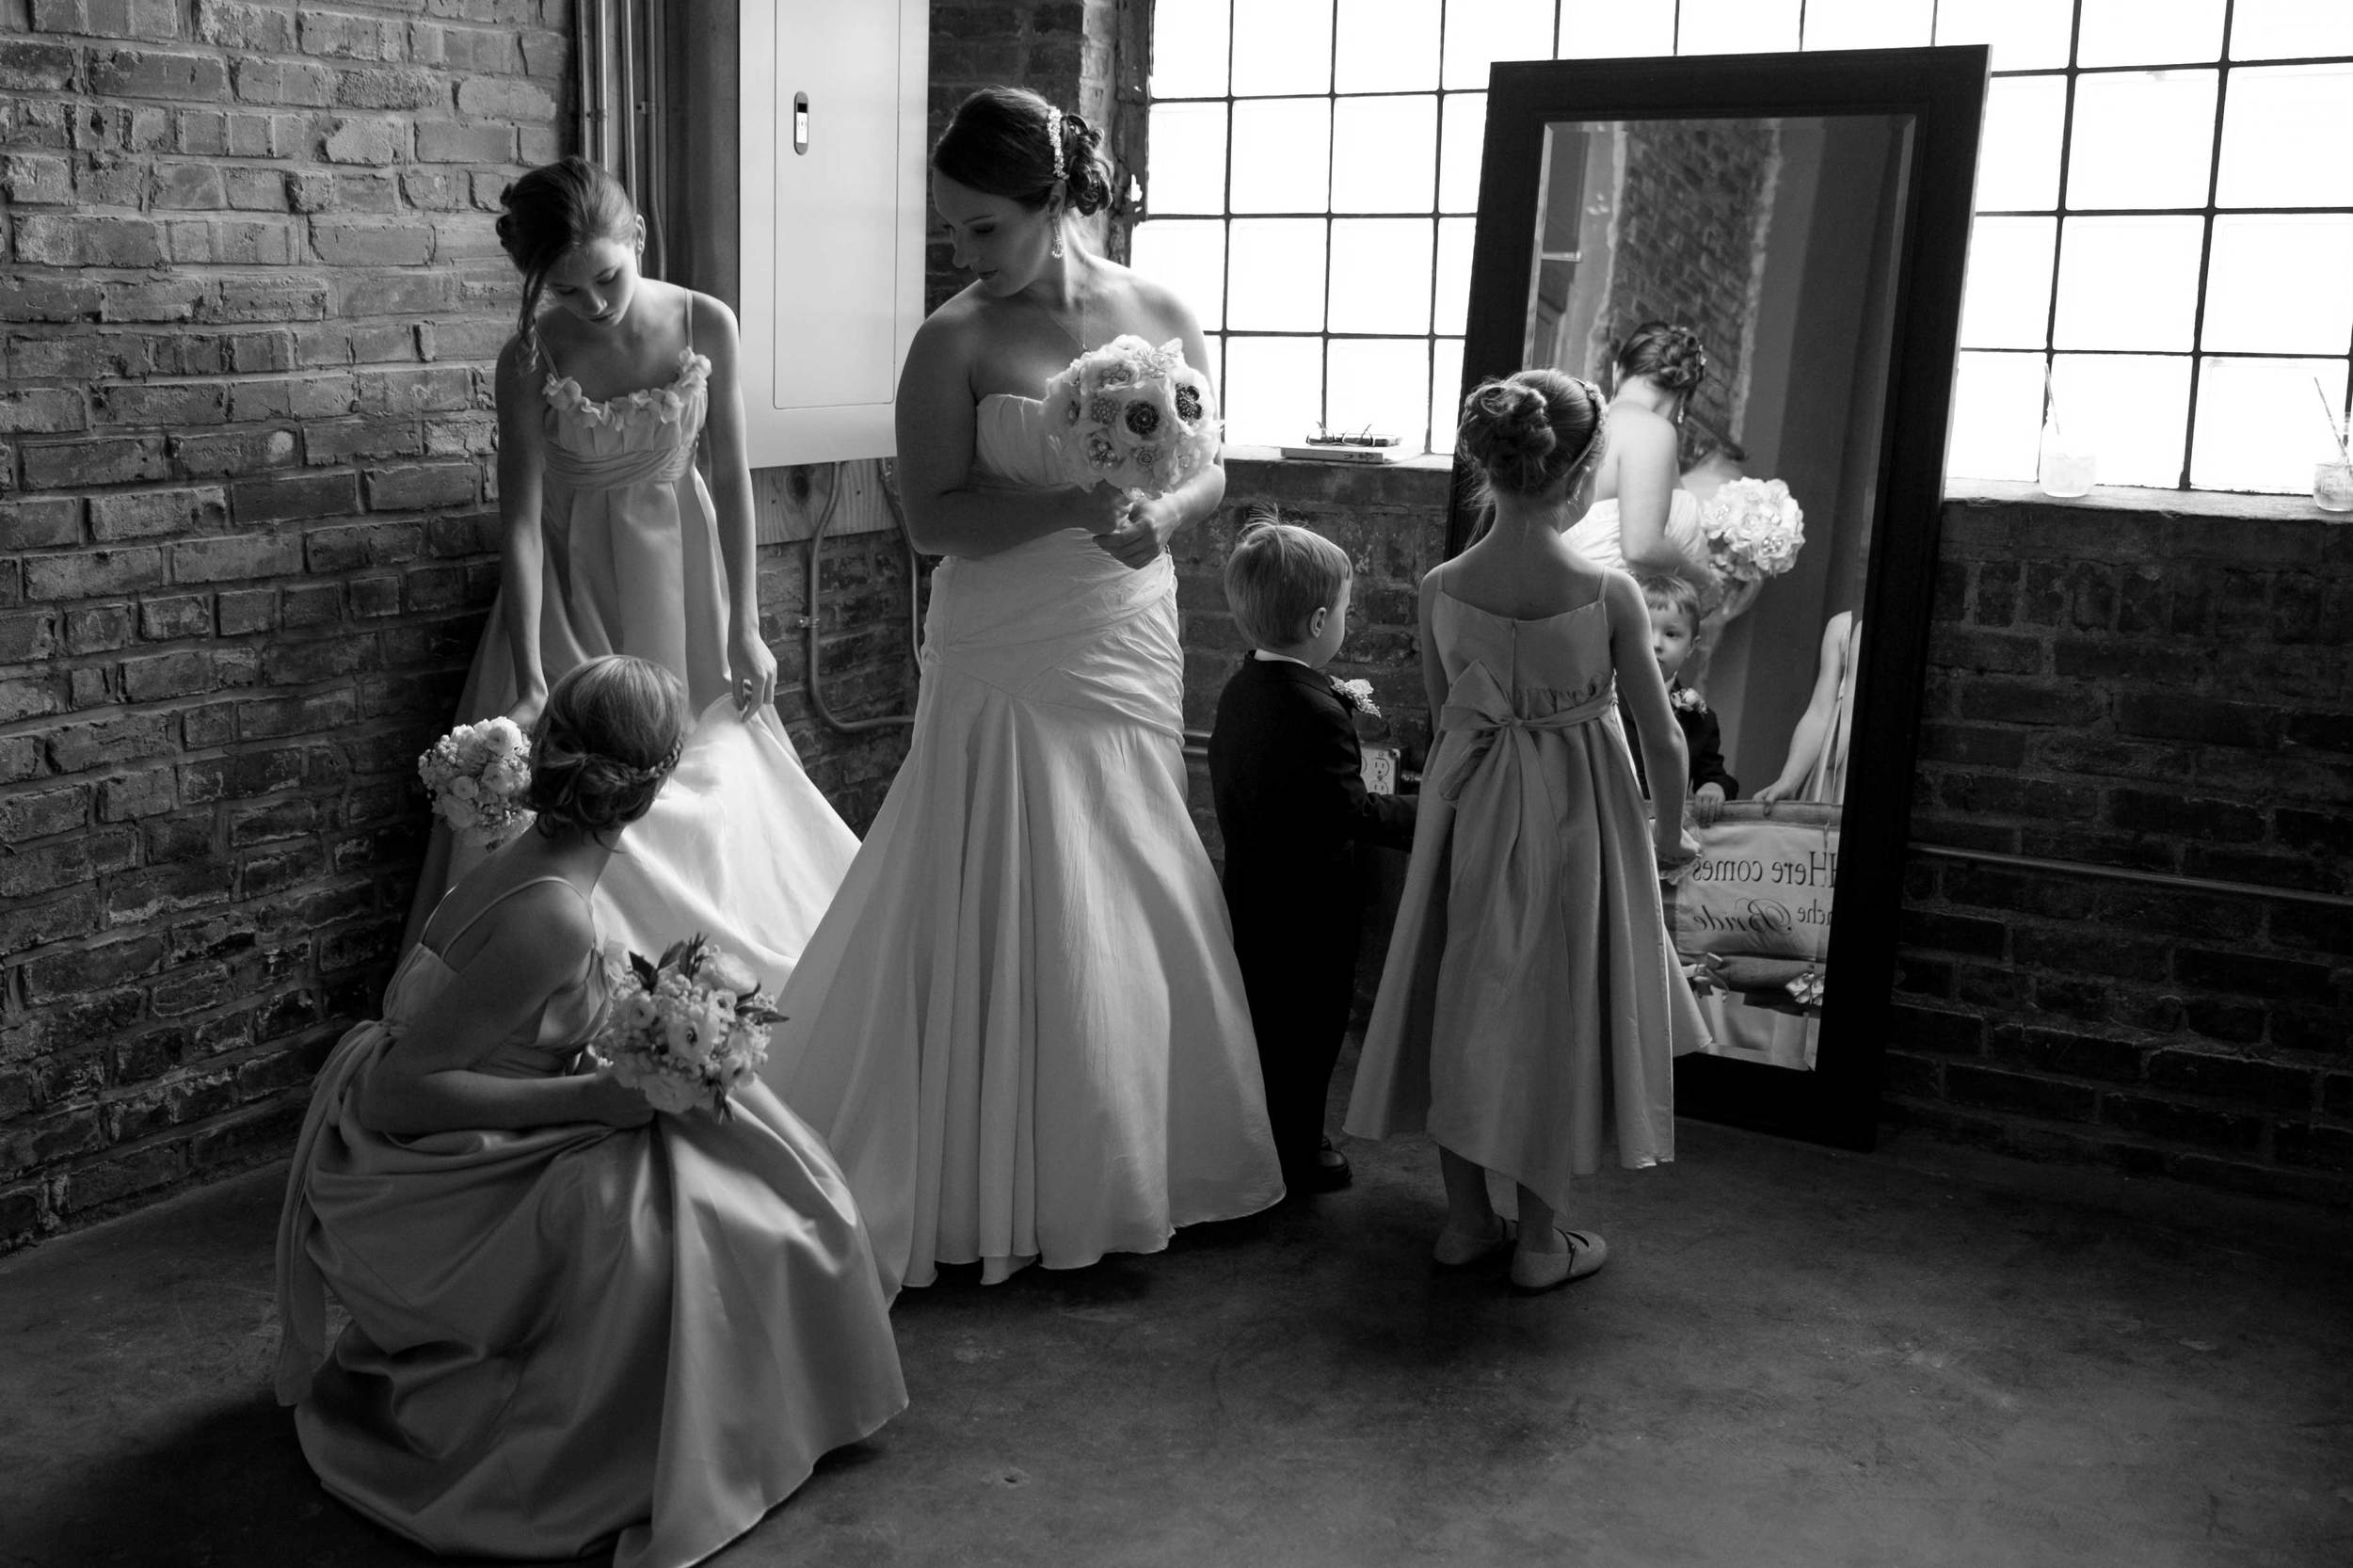 17. OUR BRIDE AND HER COURT ASSEMBLE BEFORE THE GRAND ENTRANCE.